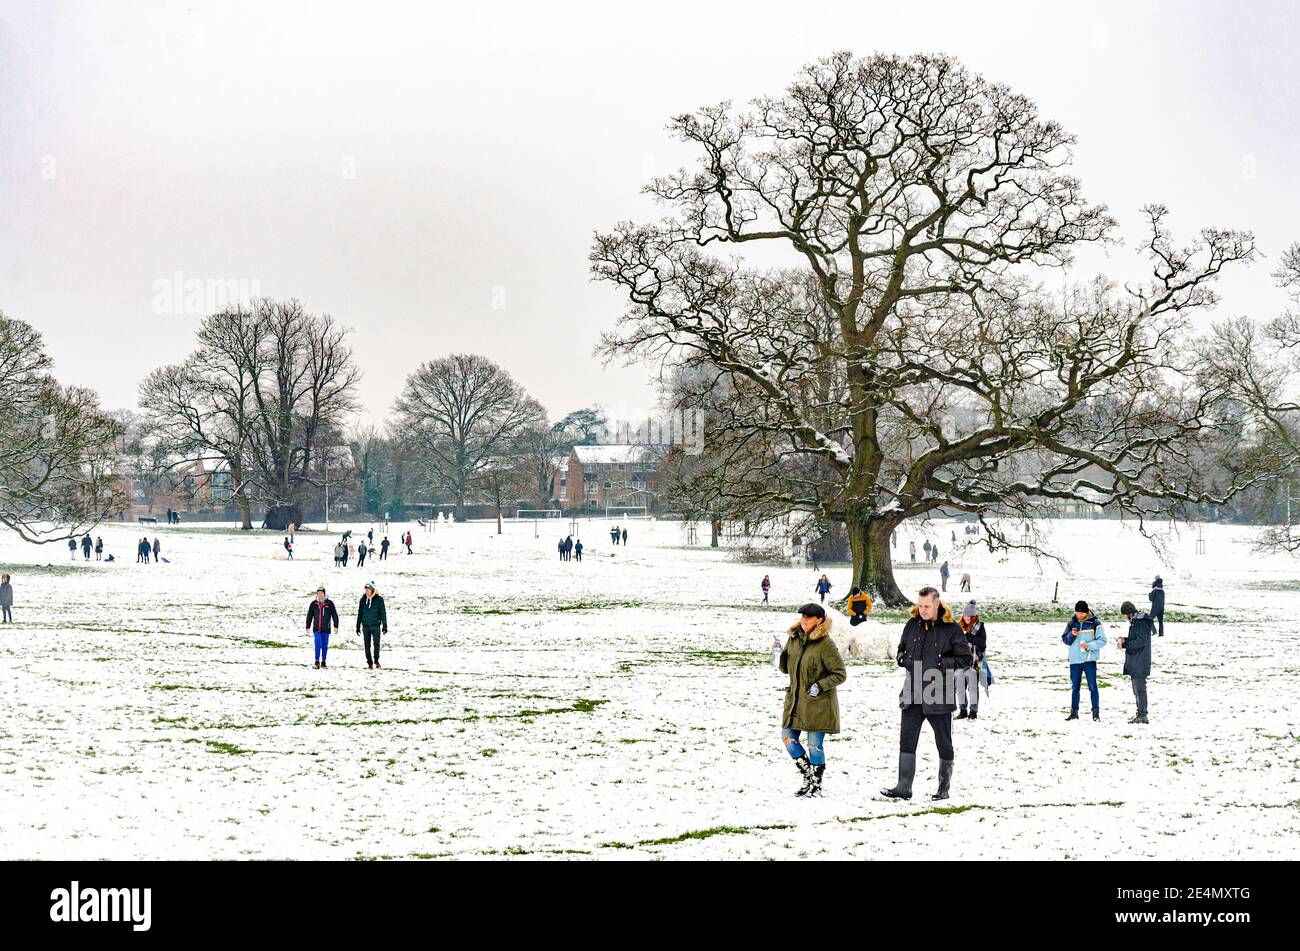 people-enjoy-the-snow-in-prospect-park-reading-berkshire-uk-although-there-is-a-coronavirus-lockdown-people-are-out-enjoying-their-exercise-2E4MXTG.jpg